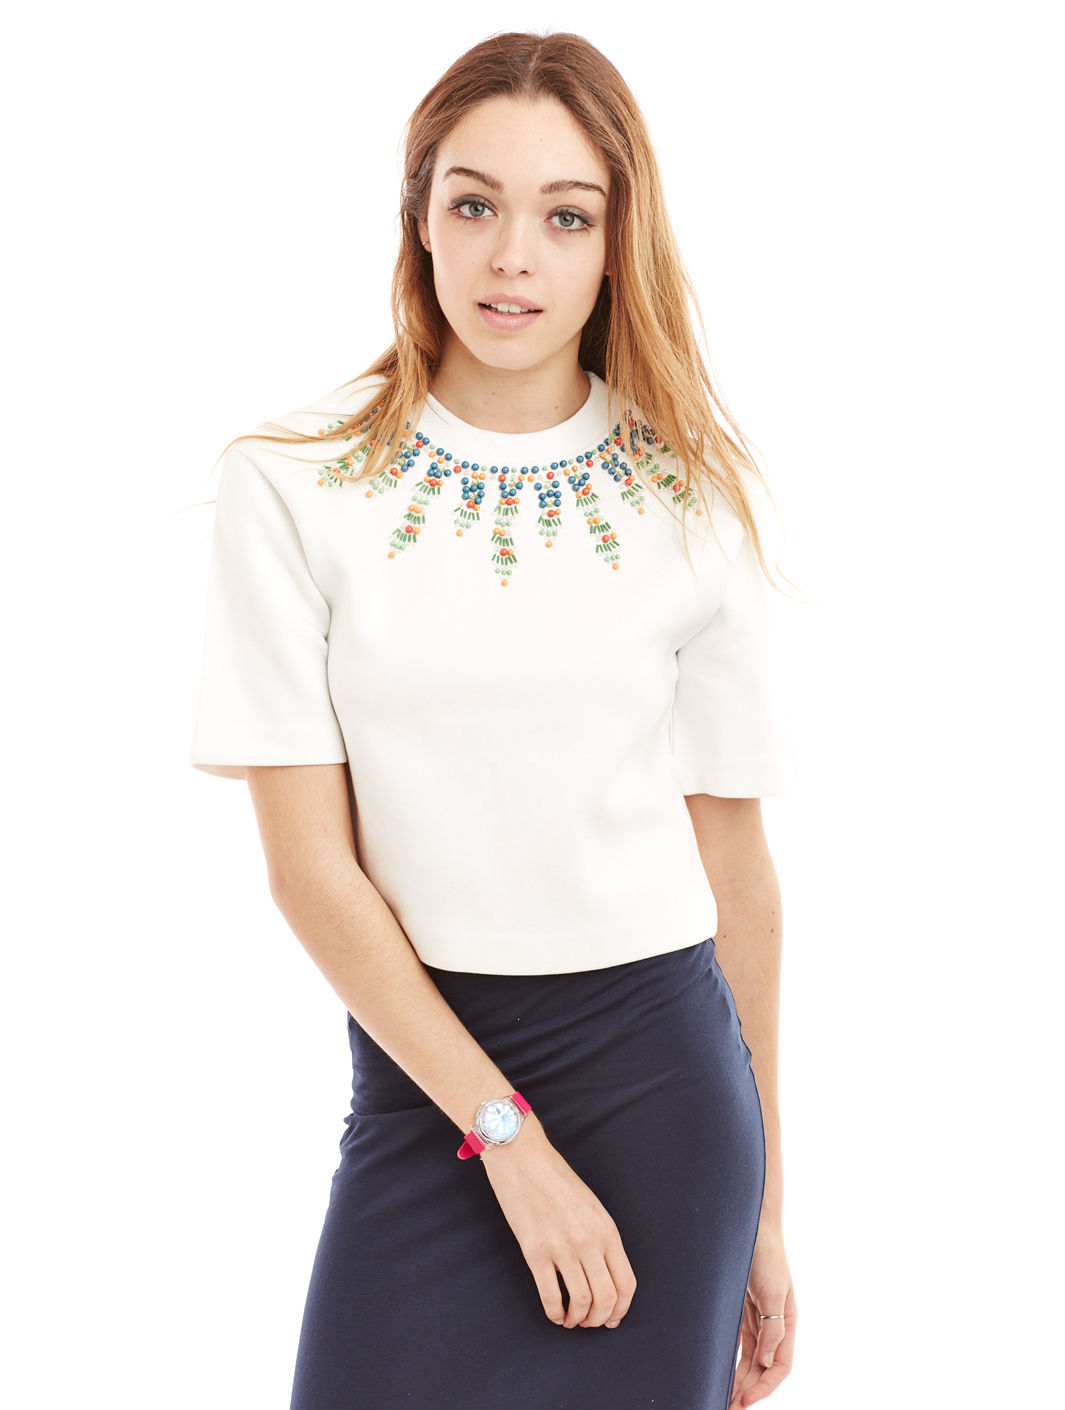 Amèle Off White Crop Top - Women's Tops Endless Rose - 44228